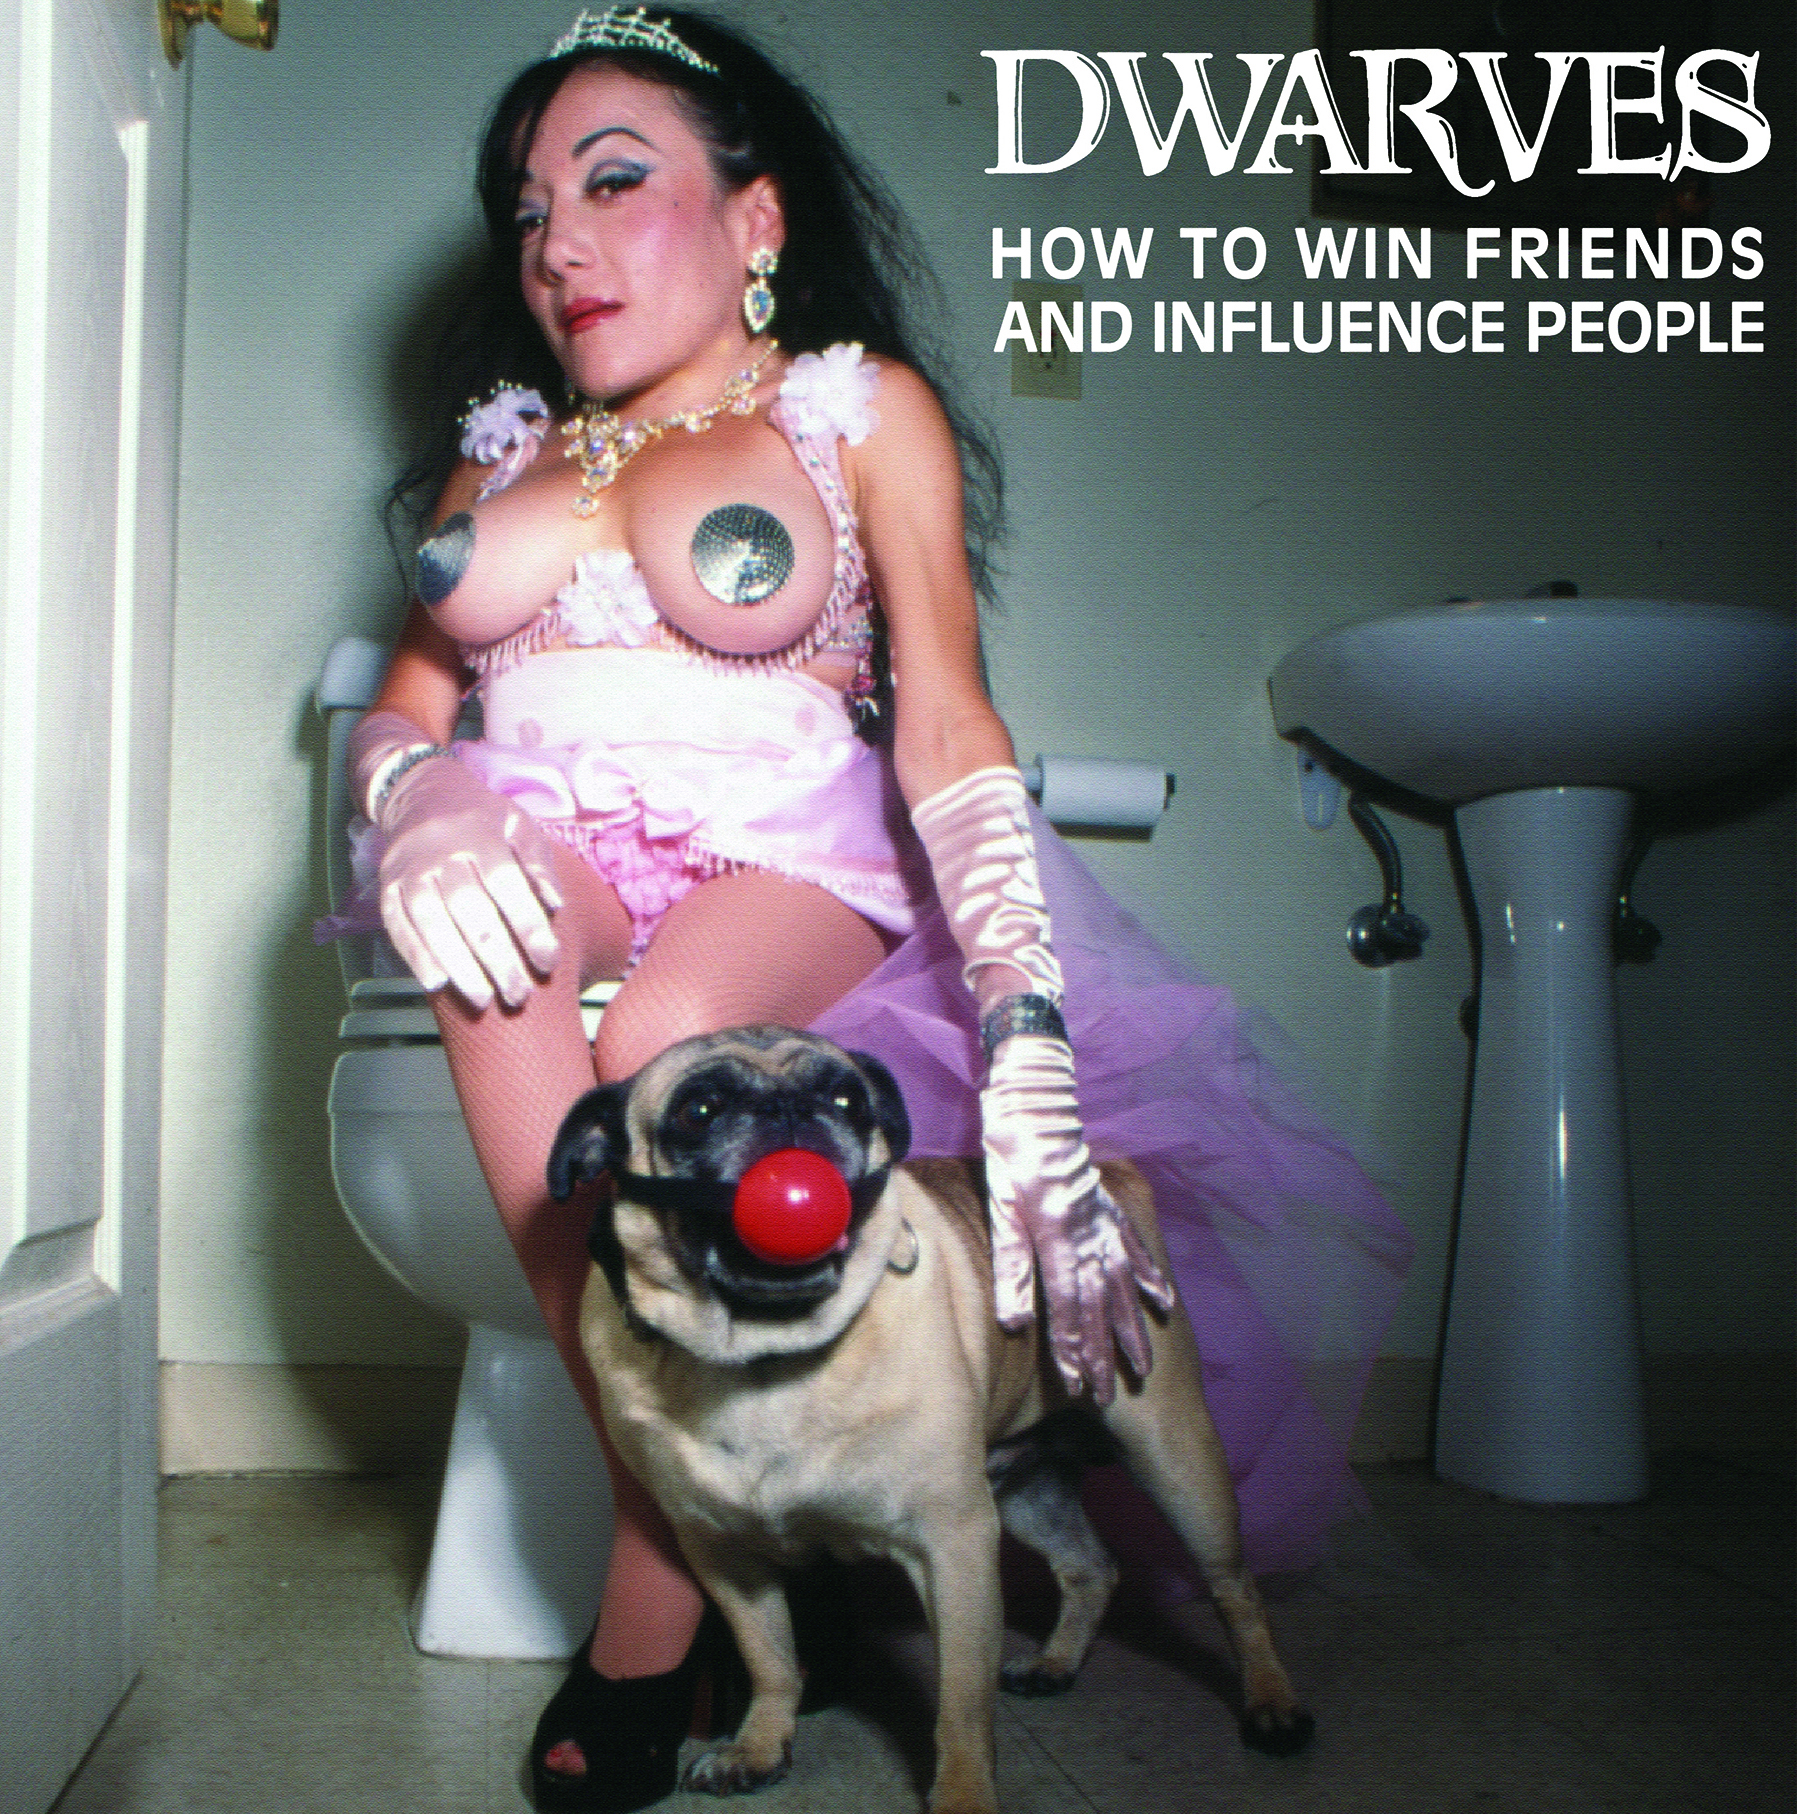 DWARVES-small_for_web